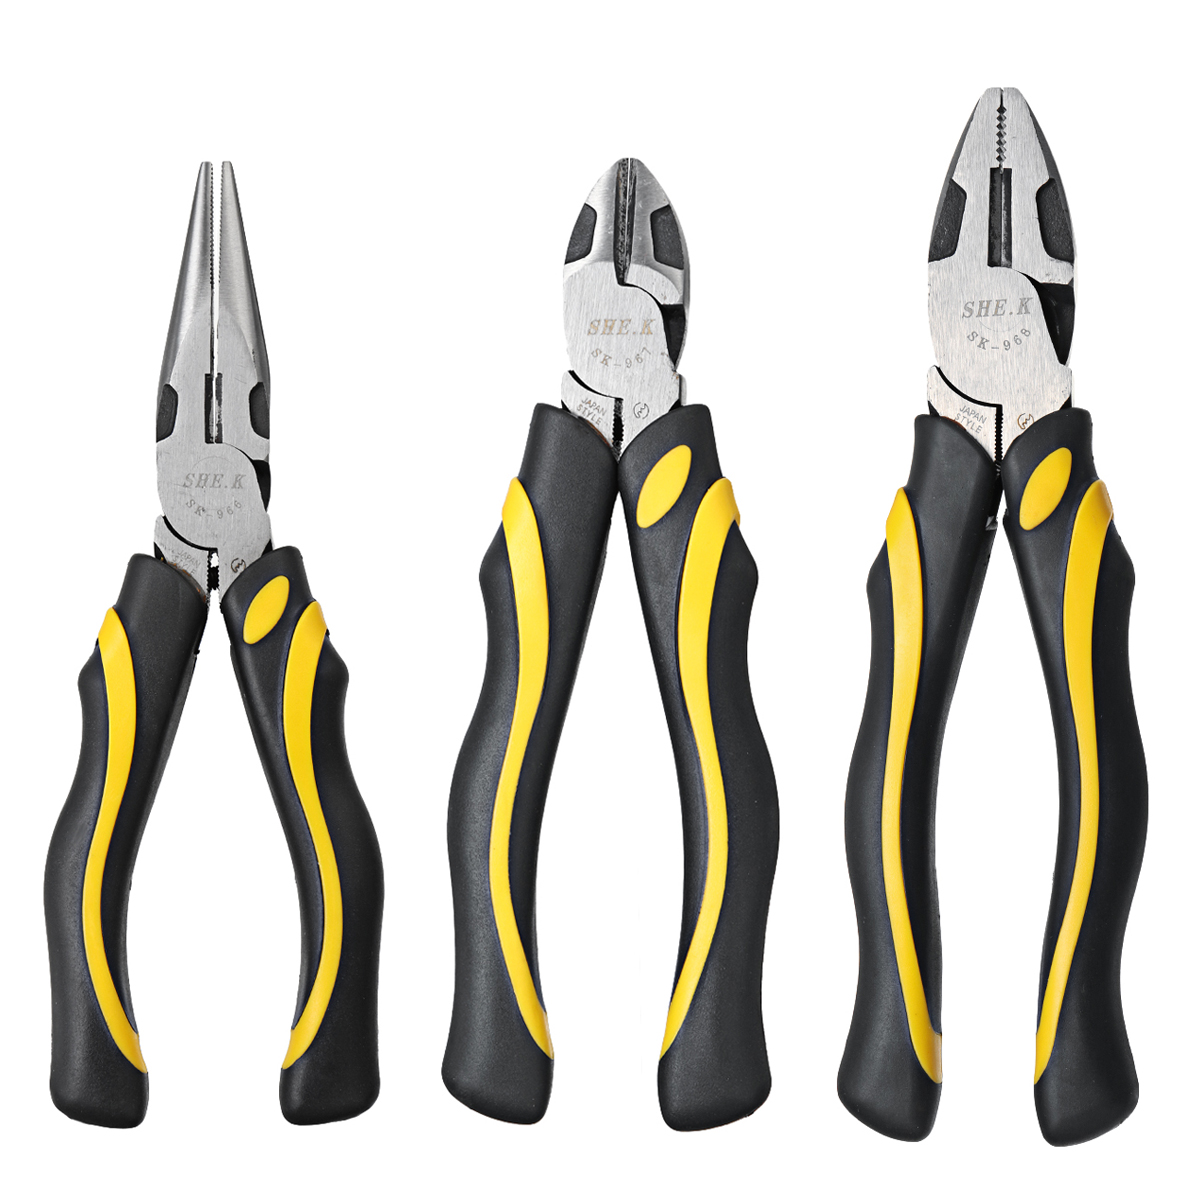 1Pc Soft Grip Combination Pliers Set Long Nose Diagonal Cutters Nippers Tool